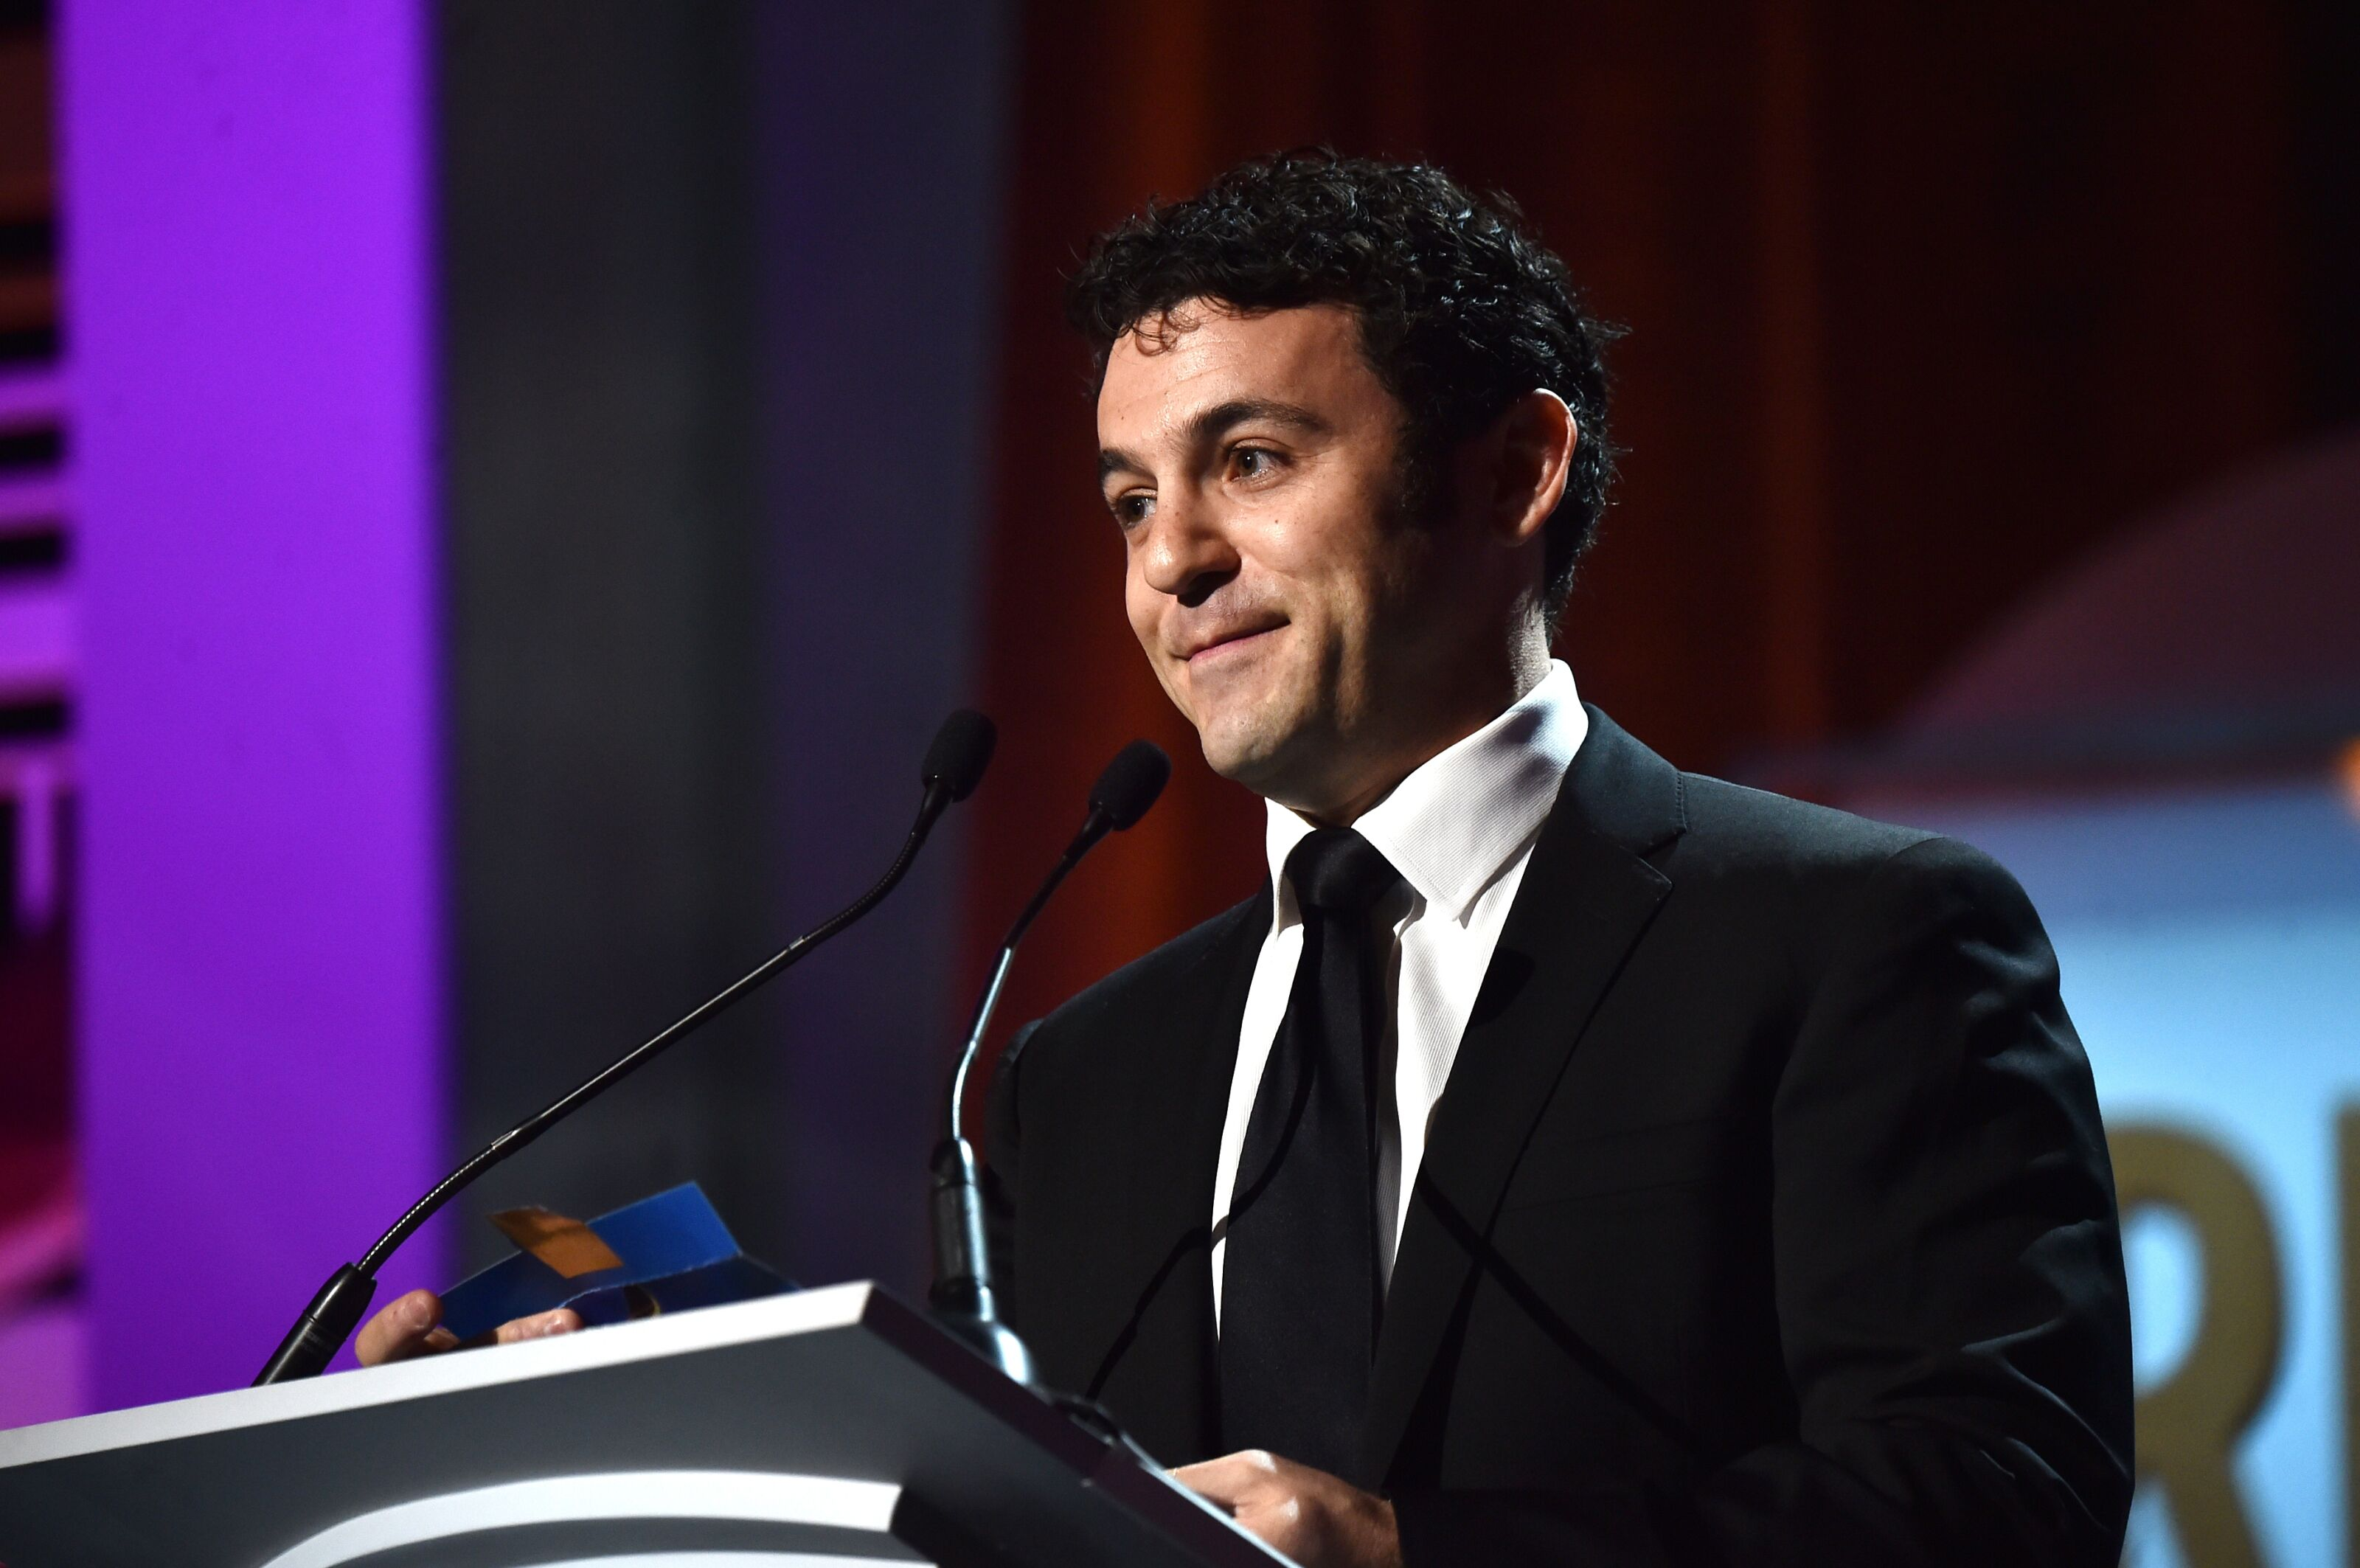 Fred Savage to host FOX show spoofing programs like Talking Dead